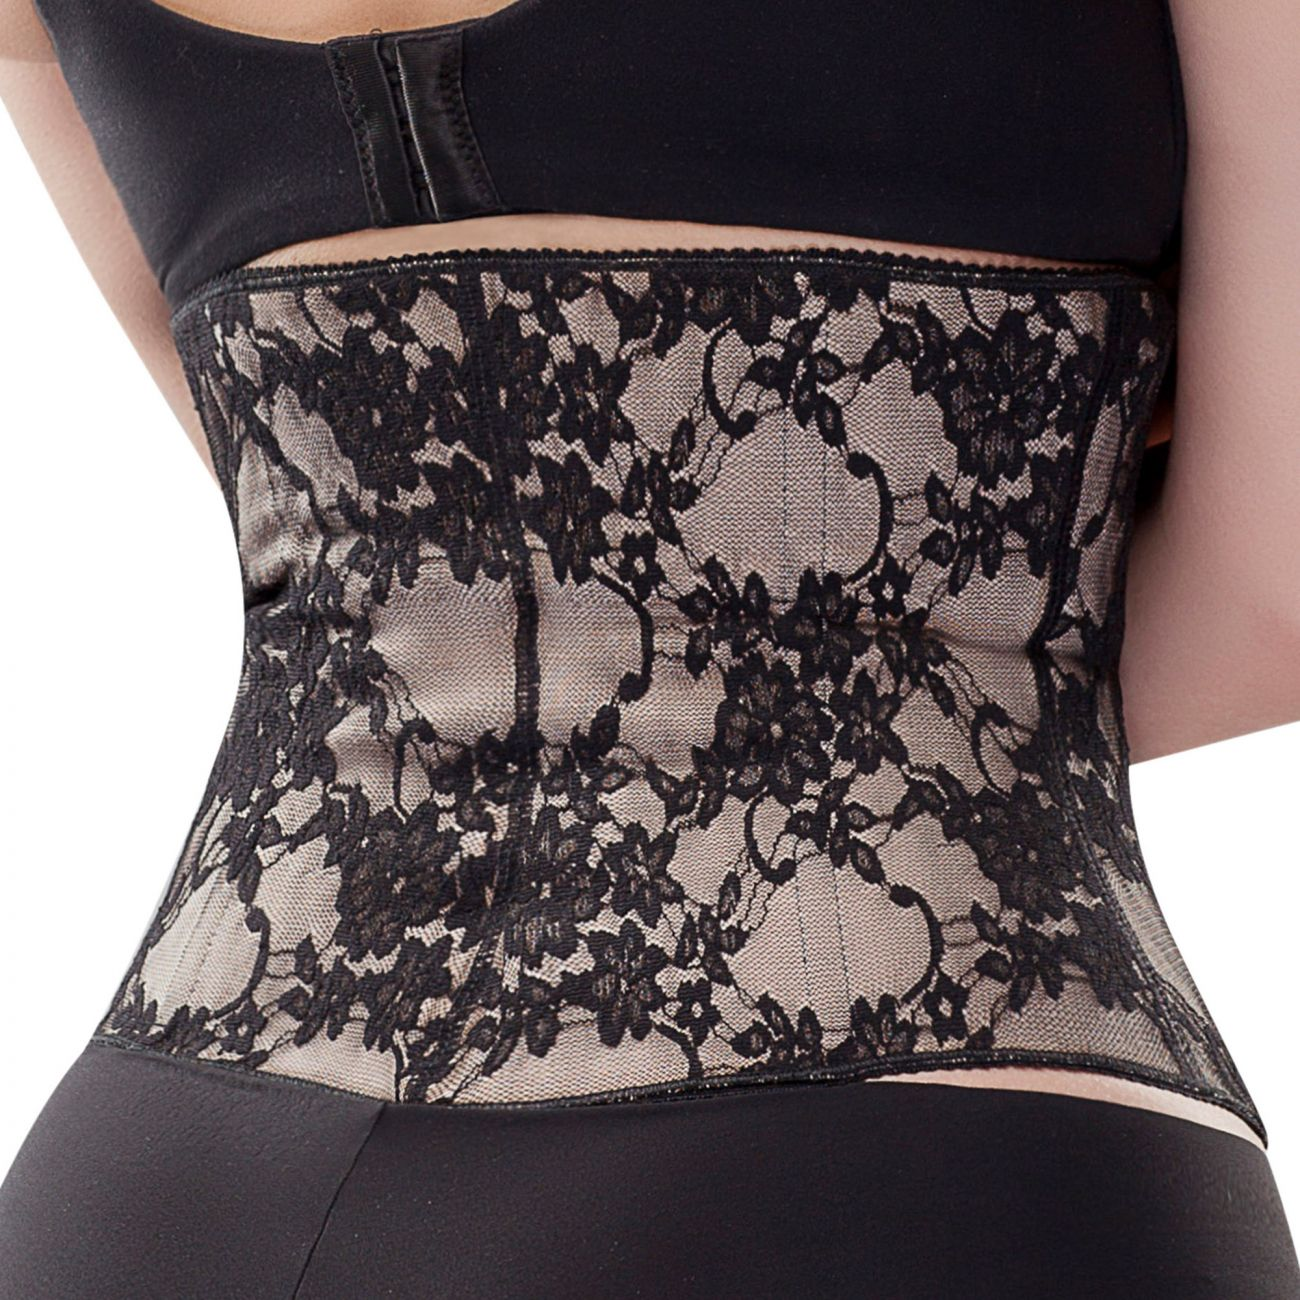 bc495d111f1 Shapewear for Women  Vedette 3102 Floral Lace Waist Cincher